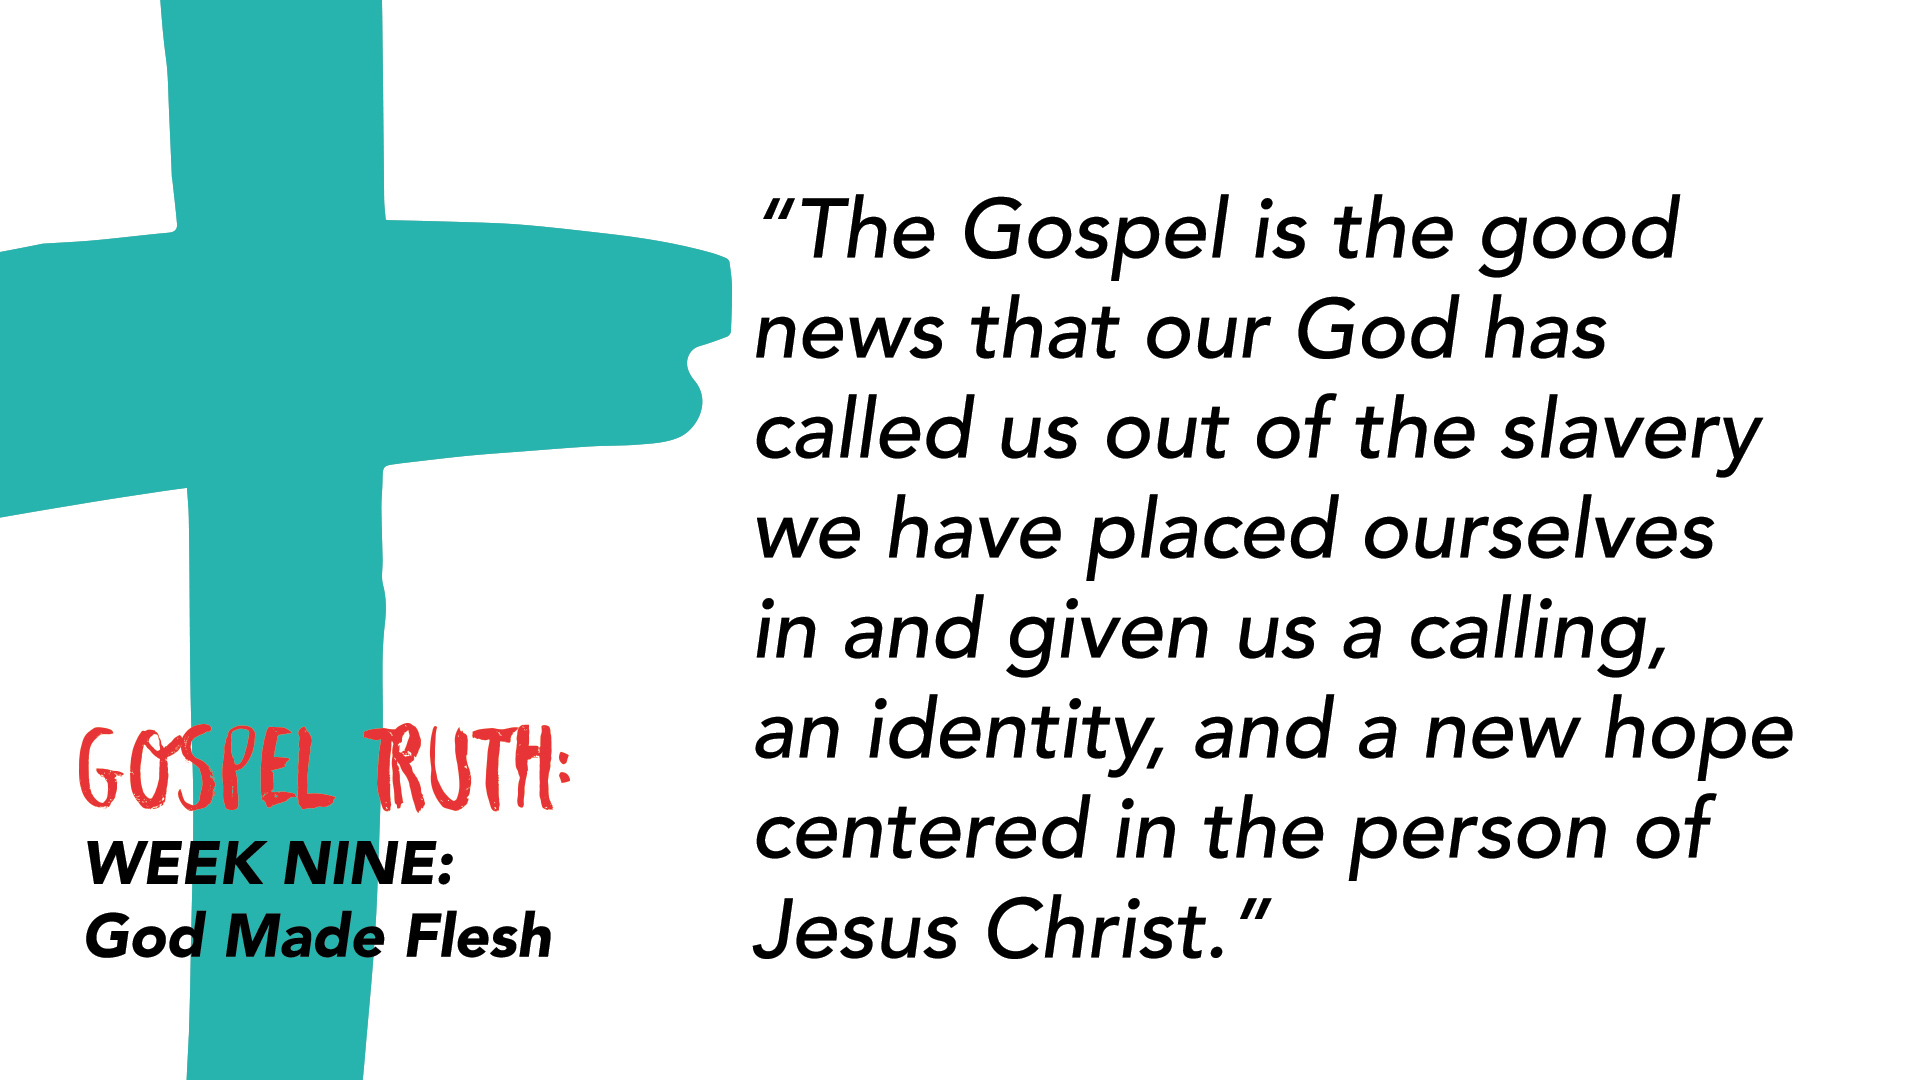 """The Gospel is the good news that our God has called us out of the slavery we have placed ourselves in and given us a calling, an identity, and a new hope centered in the person of Jesus Christ."""